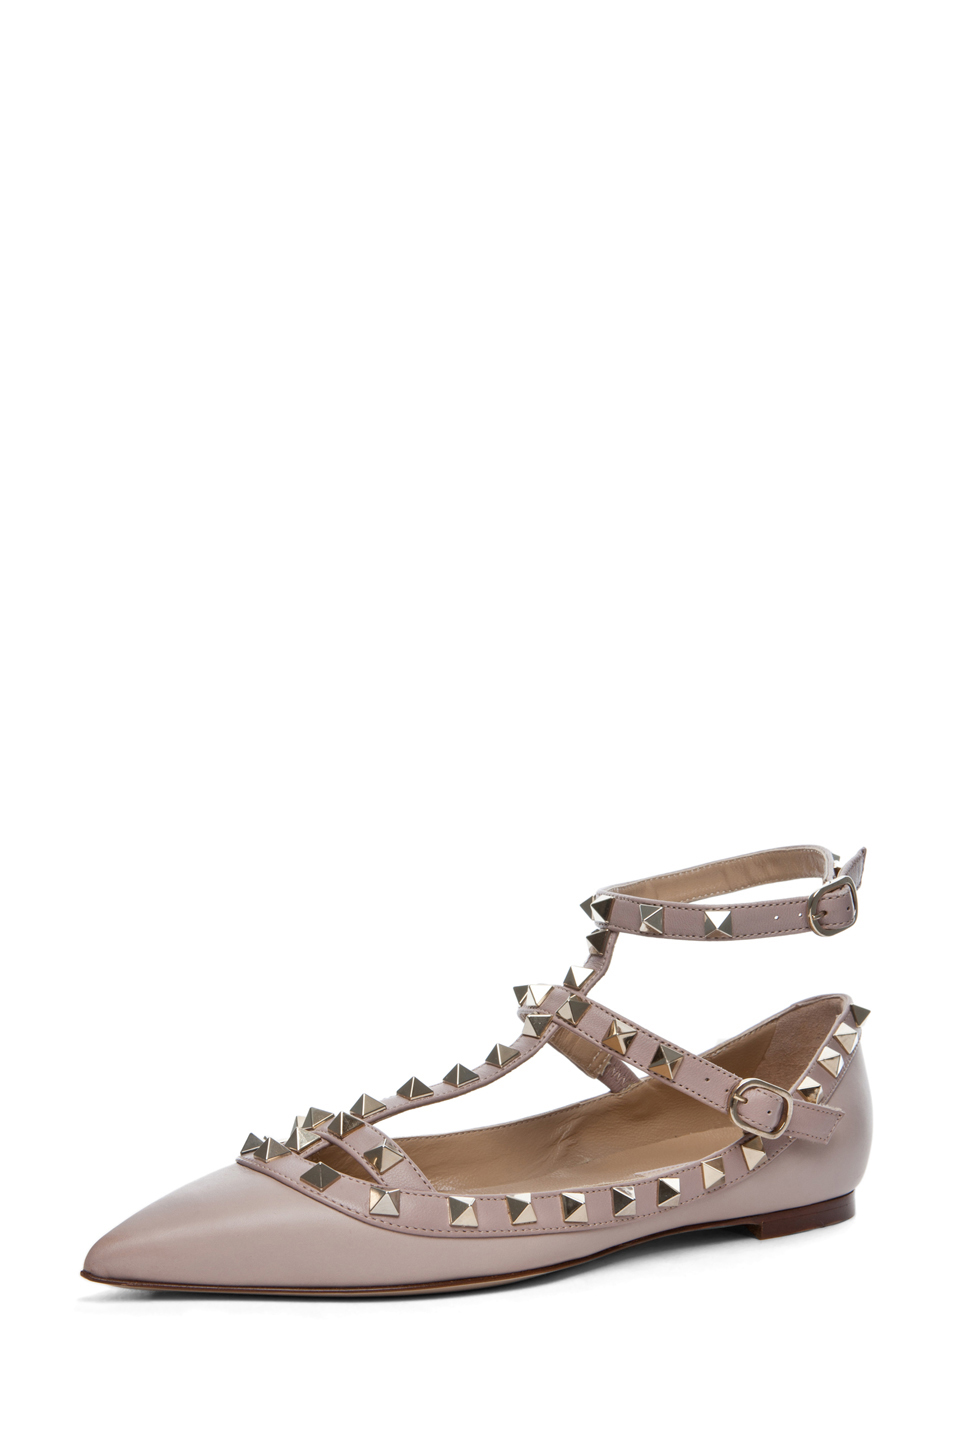 Valentino | Rockstud Leather Ballerina Flats in Powder